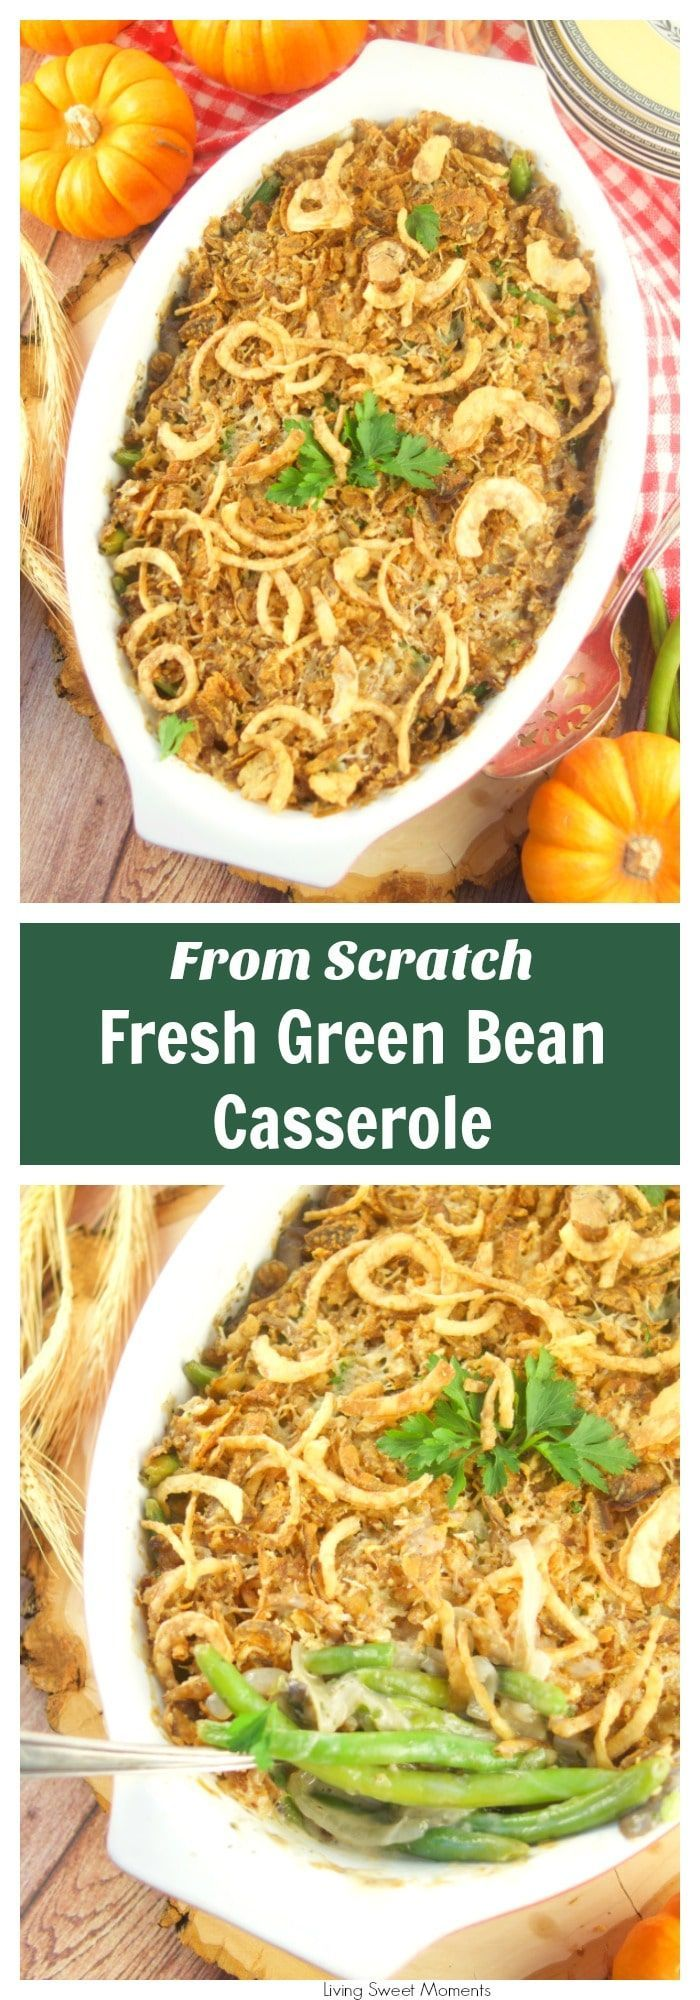 I've fancied up a classic Thanksgiving dish. This creamy Green Bean Casserole From Scratch recipe has lot's of onions, mushrooms, and green beans, and Gruyere cheese #AD #casserole #thanksgiving #vegetarian  via @Livingsmoments